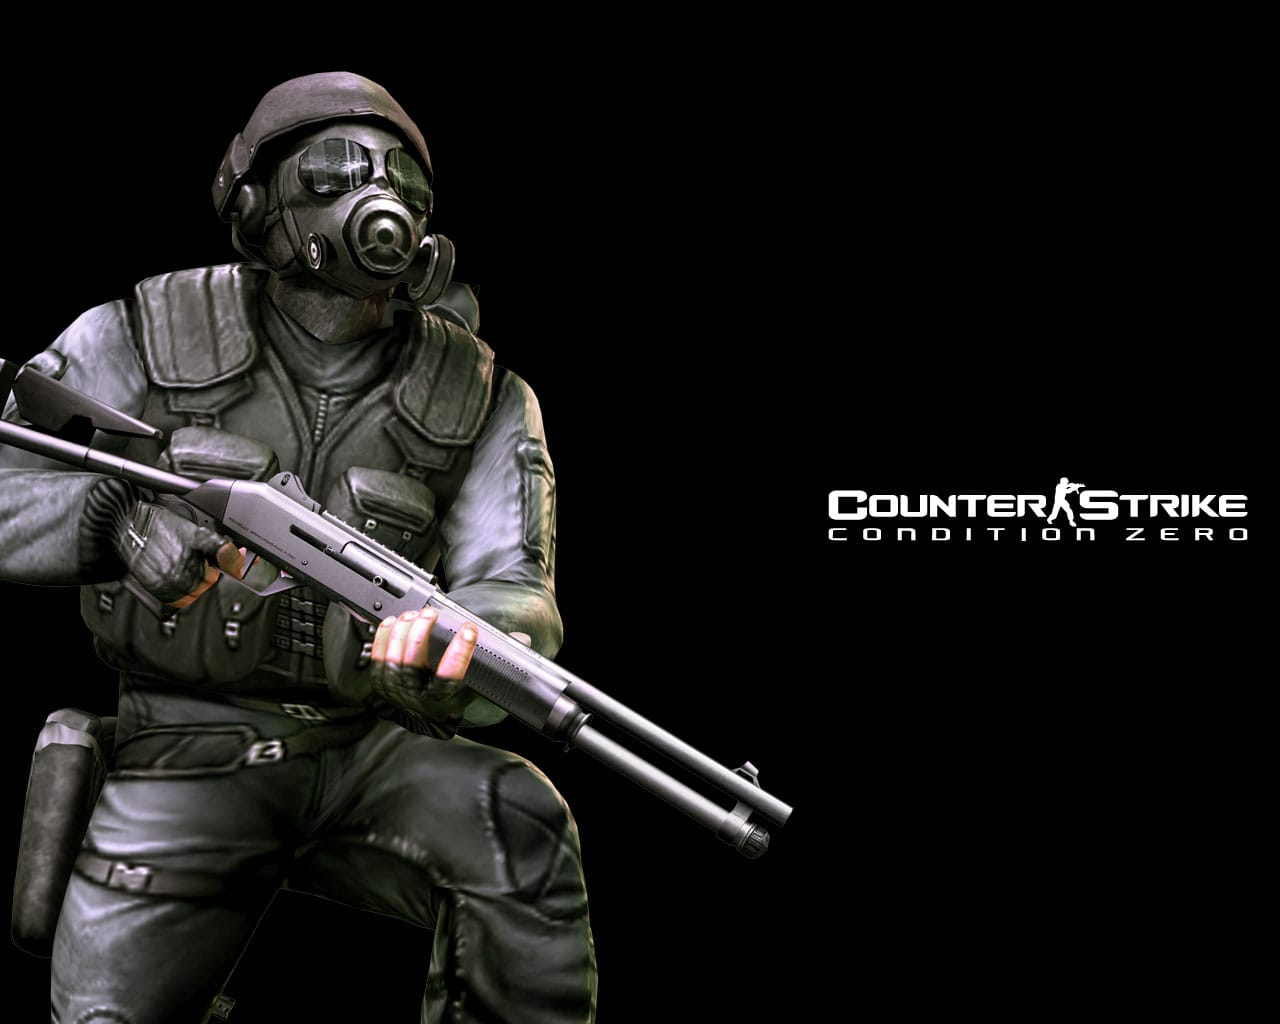 Counter-Strike: Condition Zero Desktop wallpapers